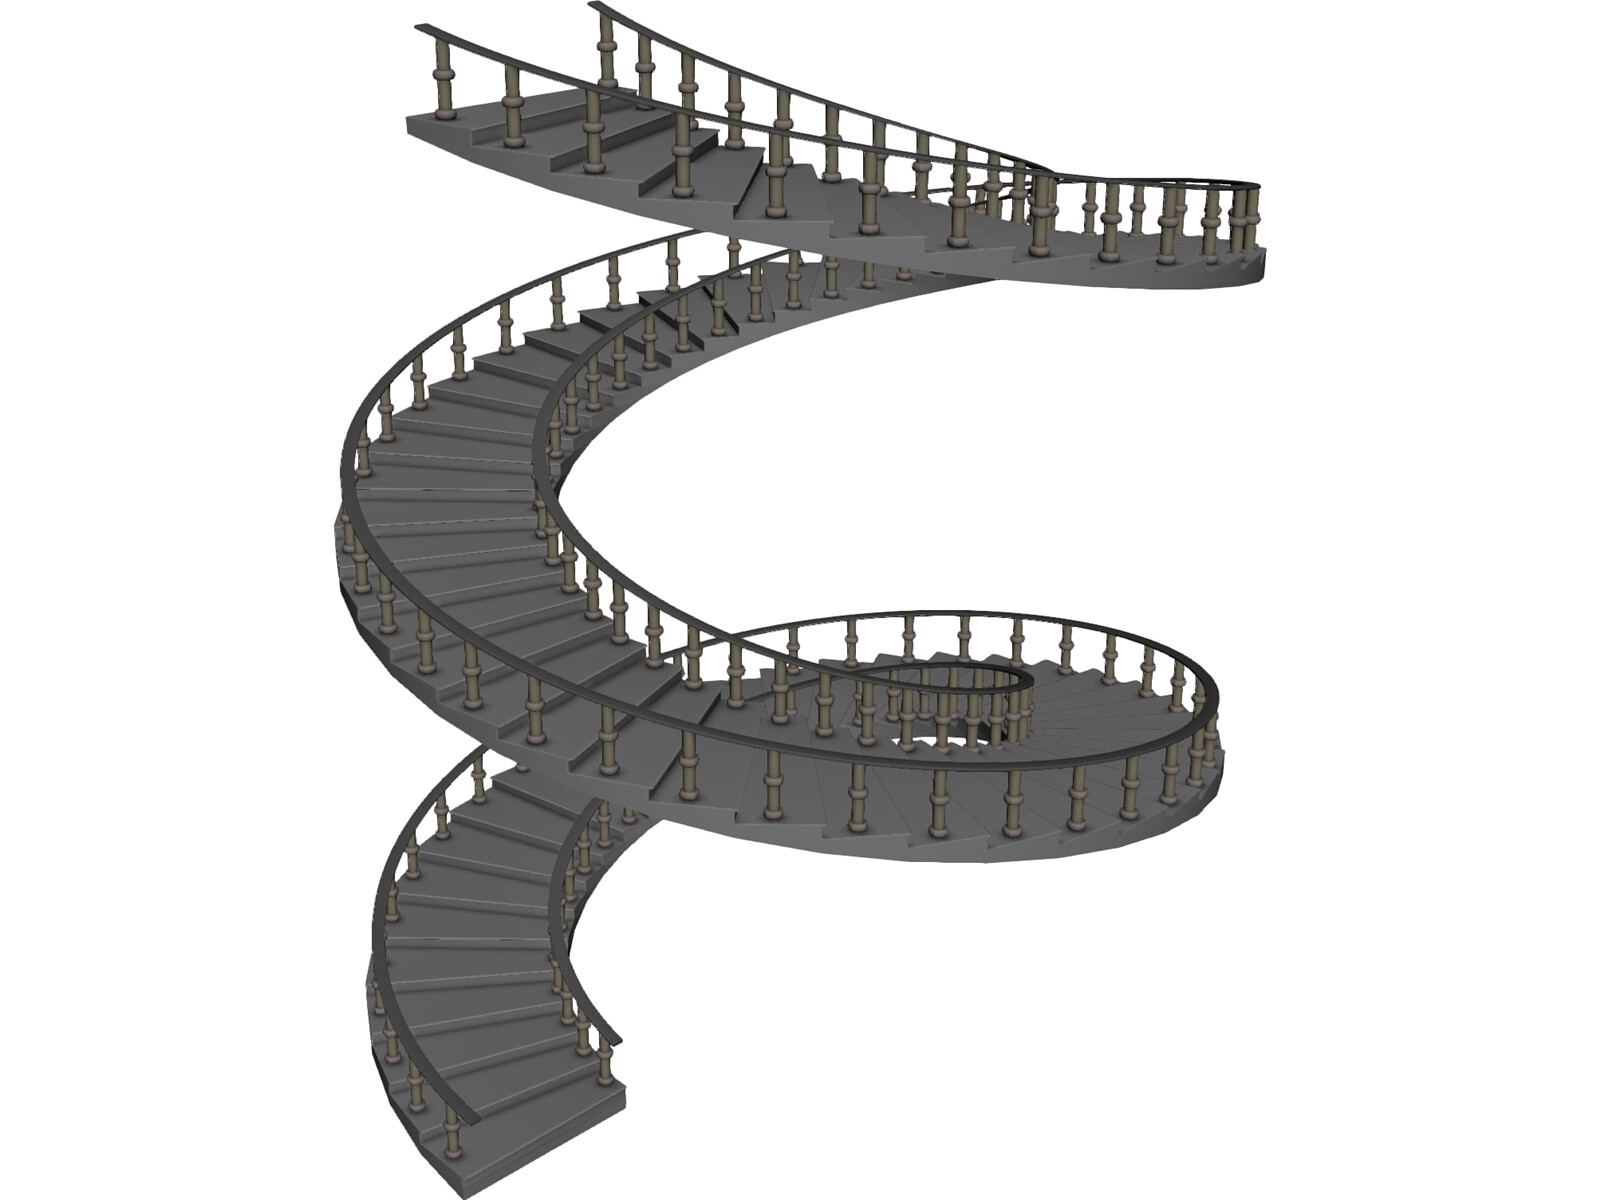 Spiral staircase 3d model 3d cad browser Spiral stair cad